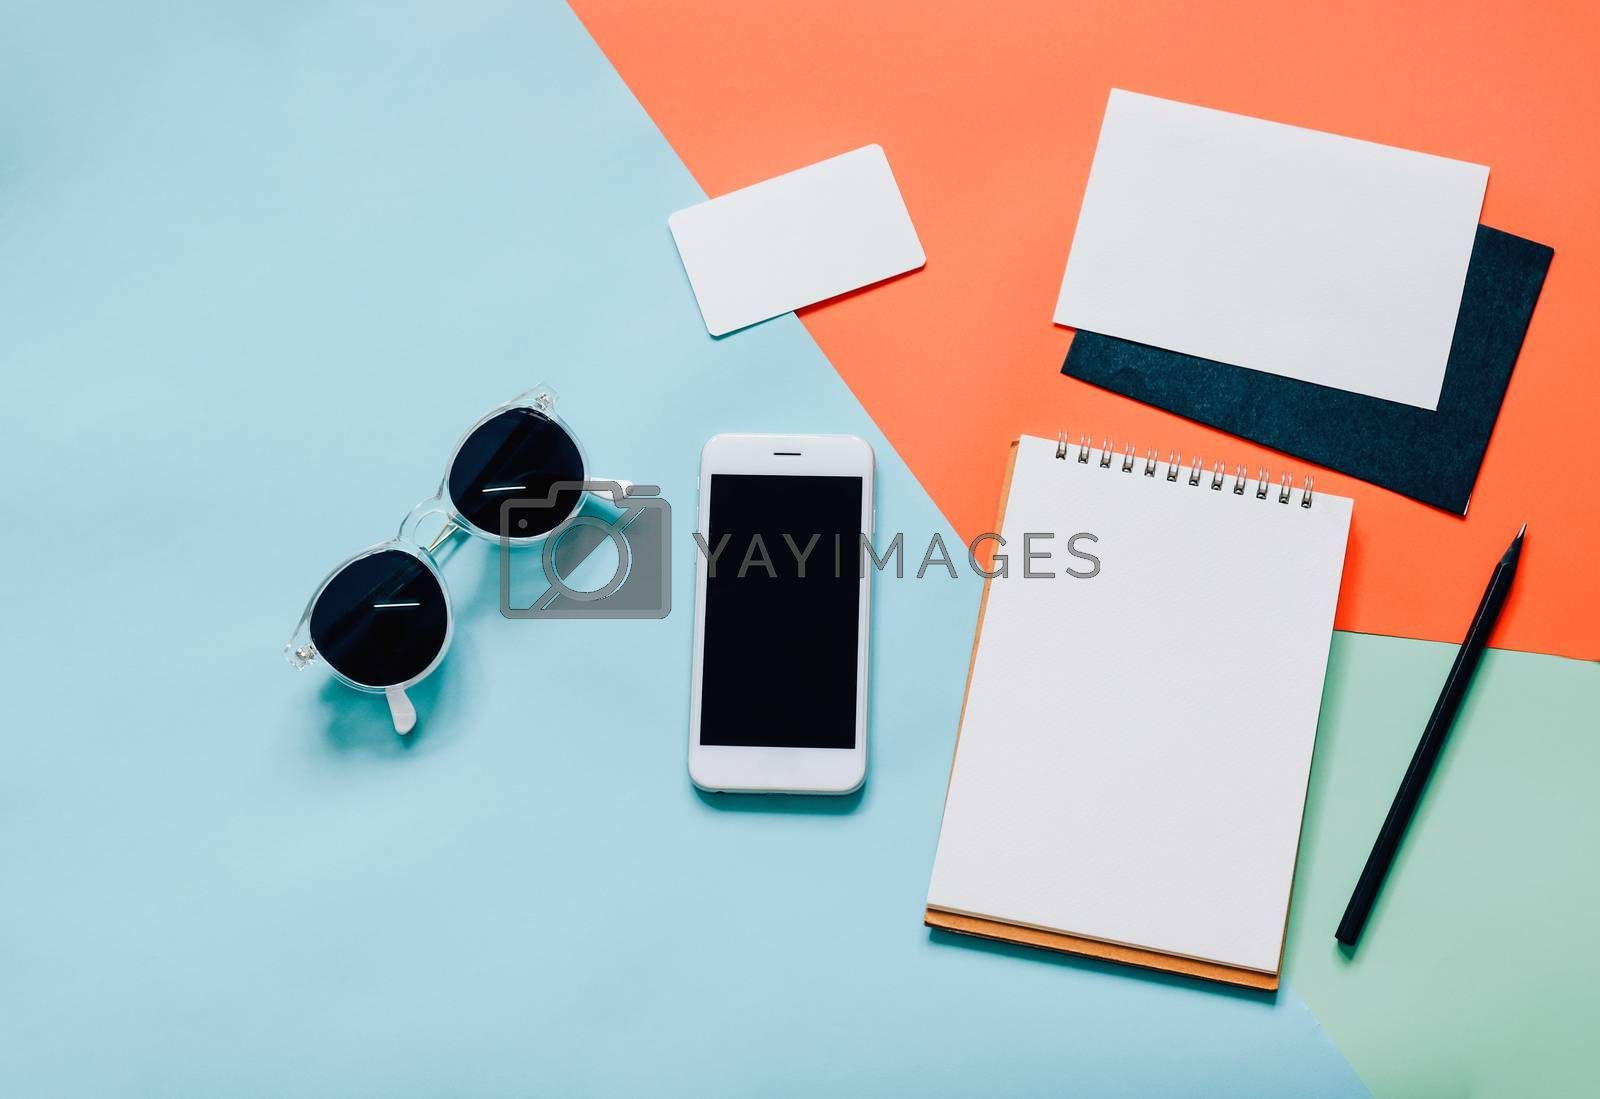 Royalty free image of Creative flat lay style workspace desk with smartphone, blank en by nuchylee